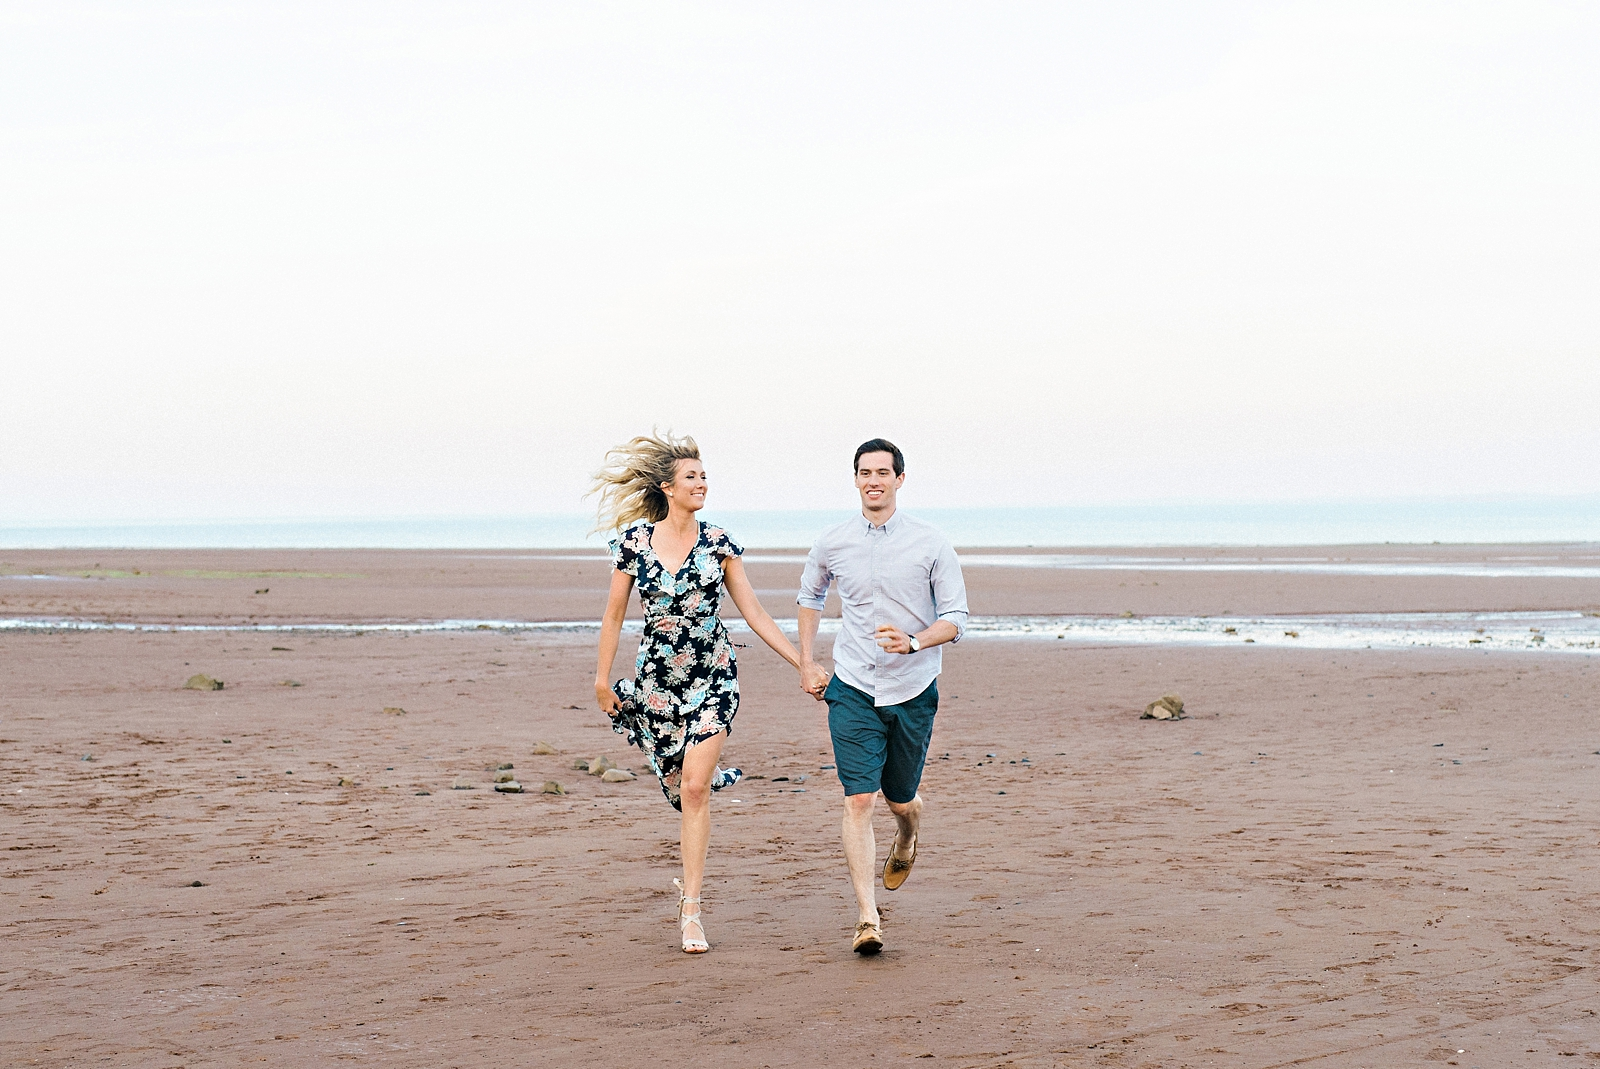 Halifax-Wedding-Photographer_Steph & Alex_Halifax Wedding Photography_Valley Engagement_17.jpg